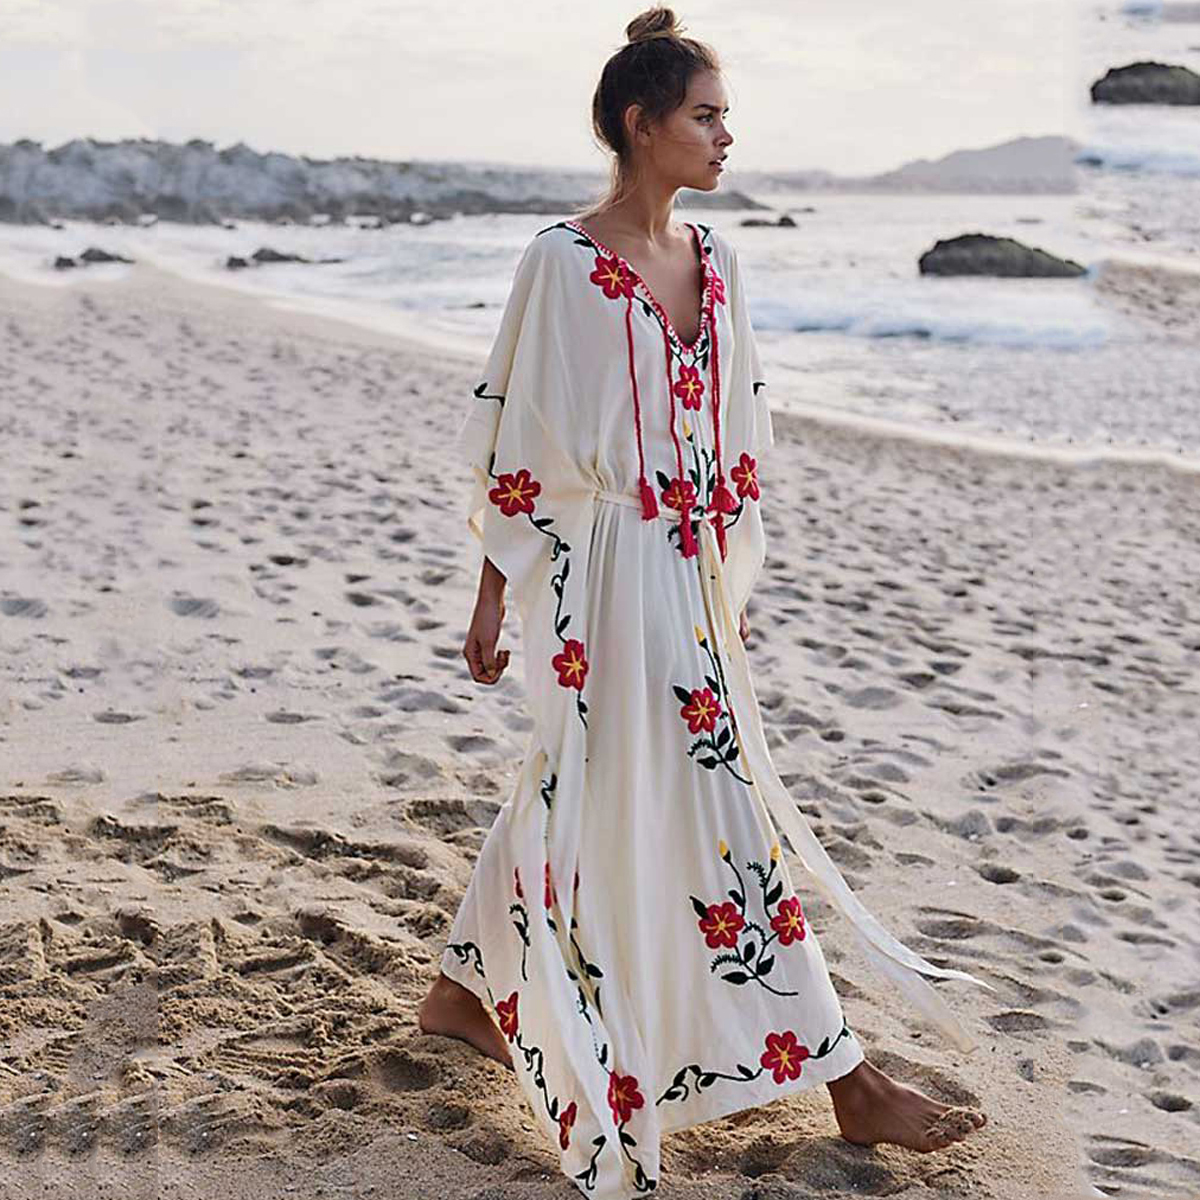 Jastie Boho Floral Embroidered Kaftan Women Dress V-Neck with Tassels Summer Dress Oversized Batwing Sleeve Swimsuit Beach Dress outfits para playa mujer 2019